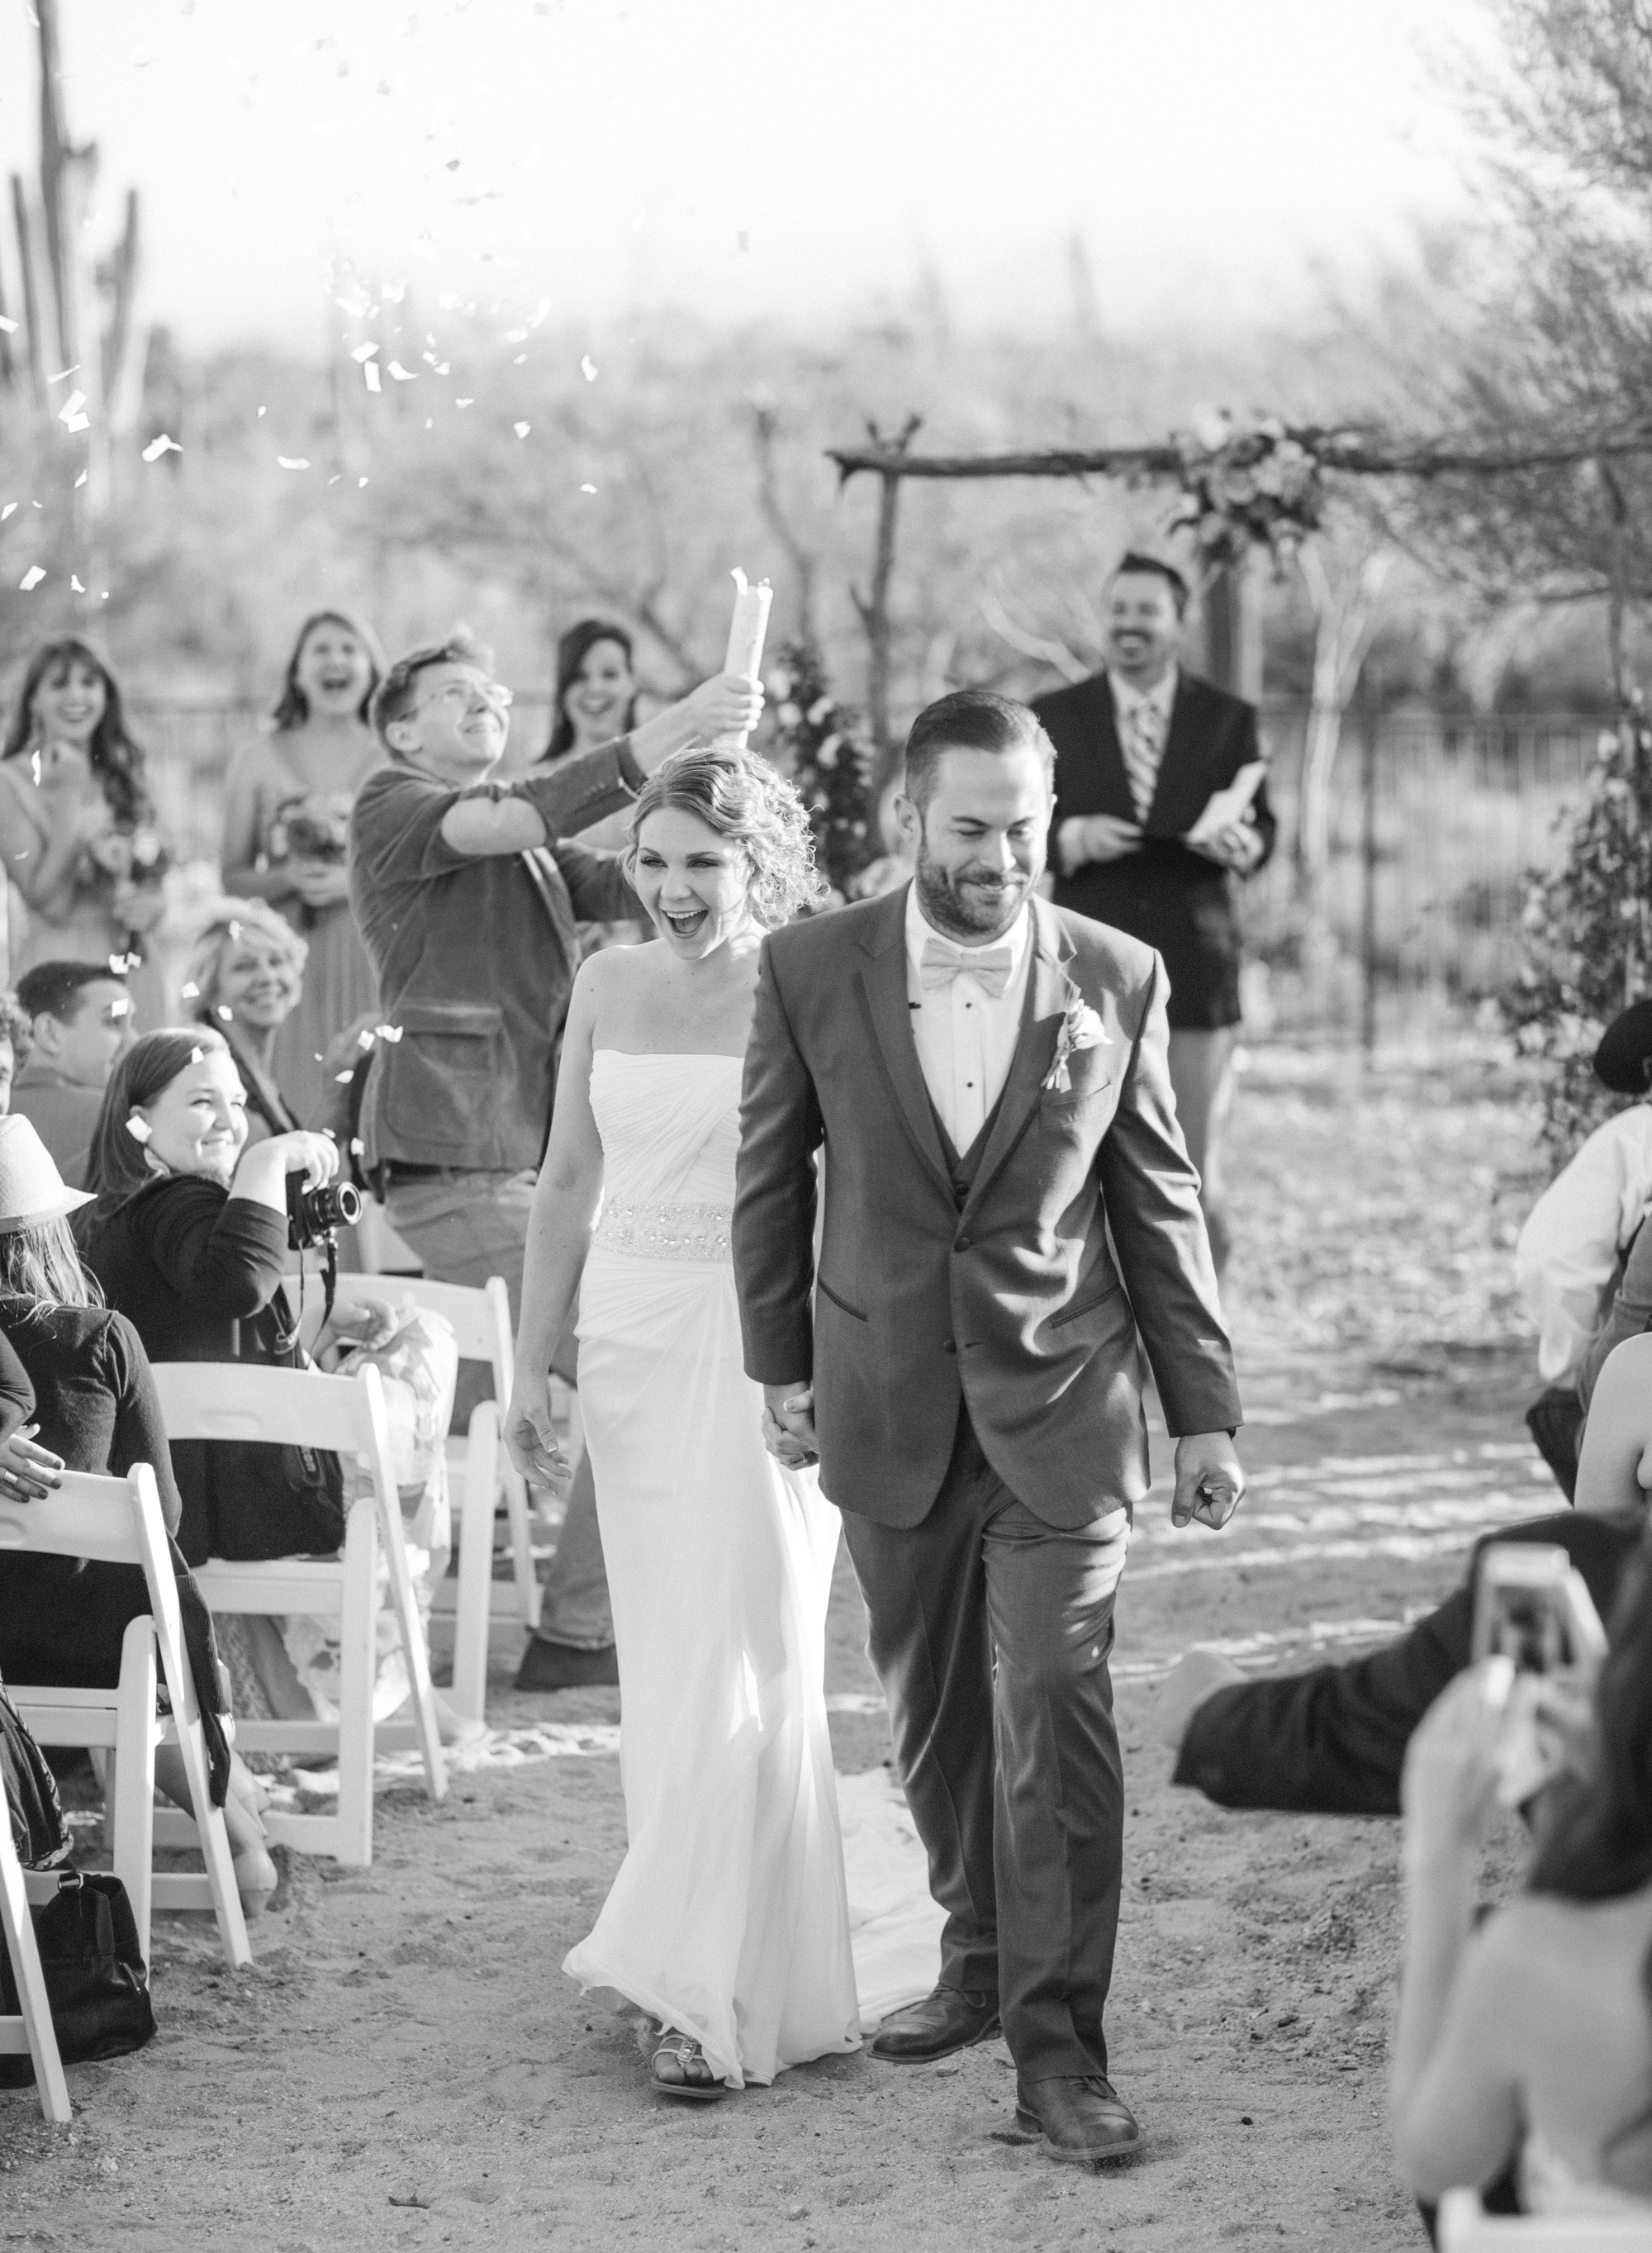 Bride & Groom walking down the aisle with confetti